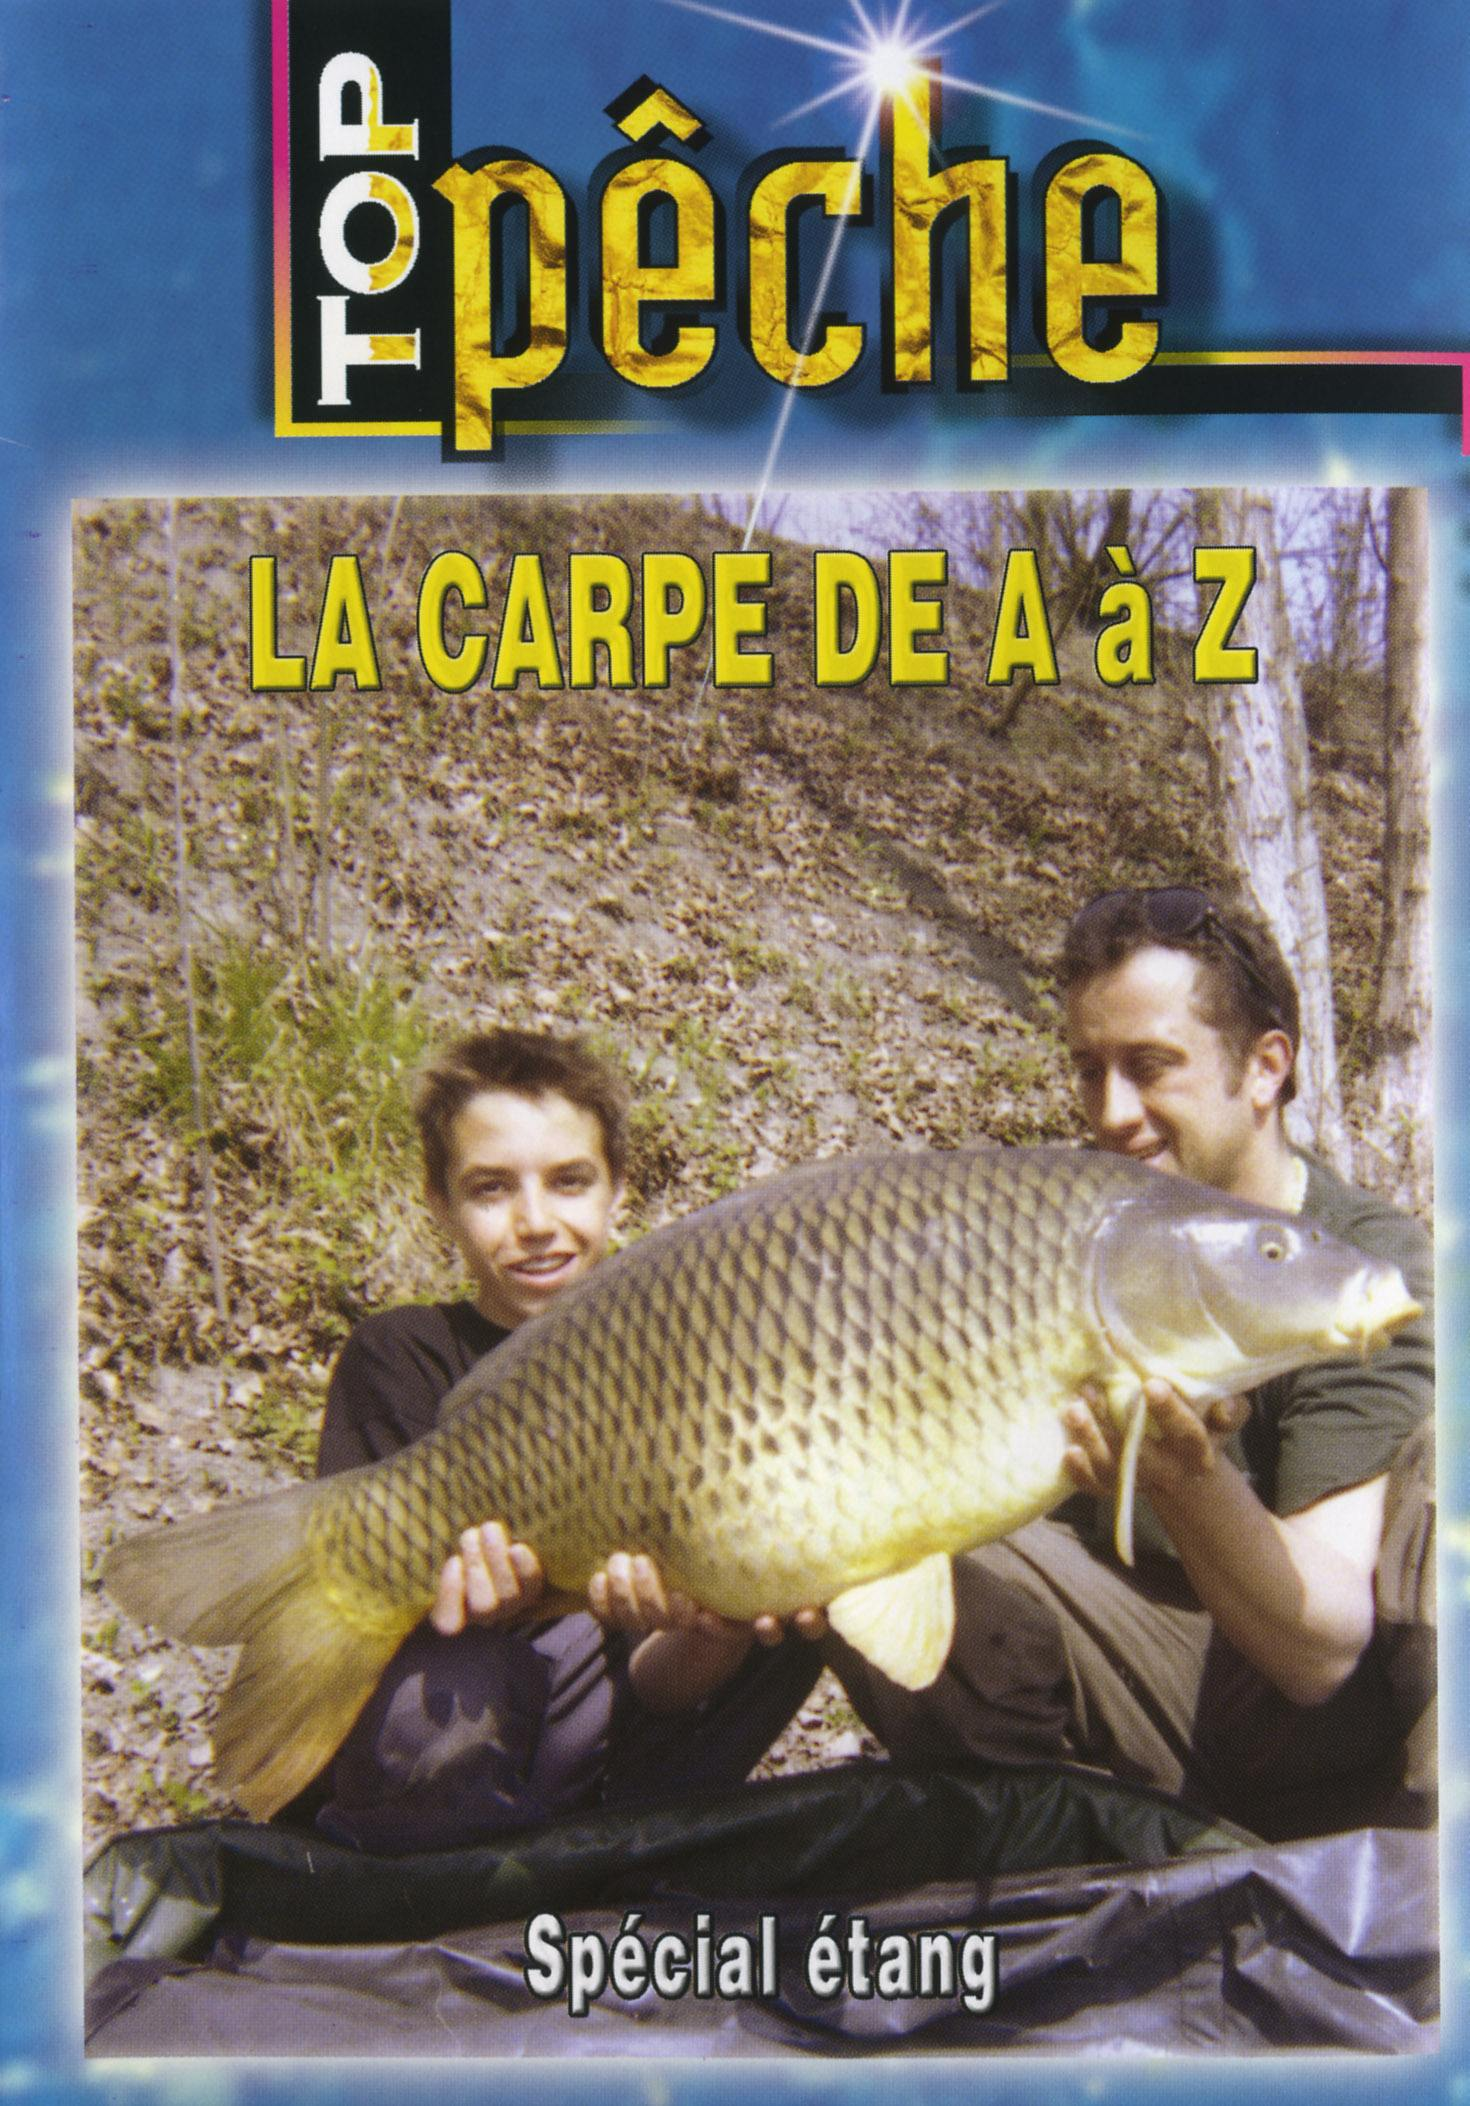 Top peche - la carpe de a a z - dvd